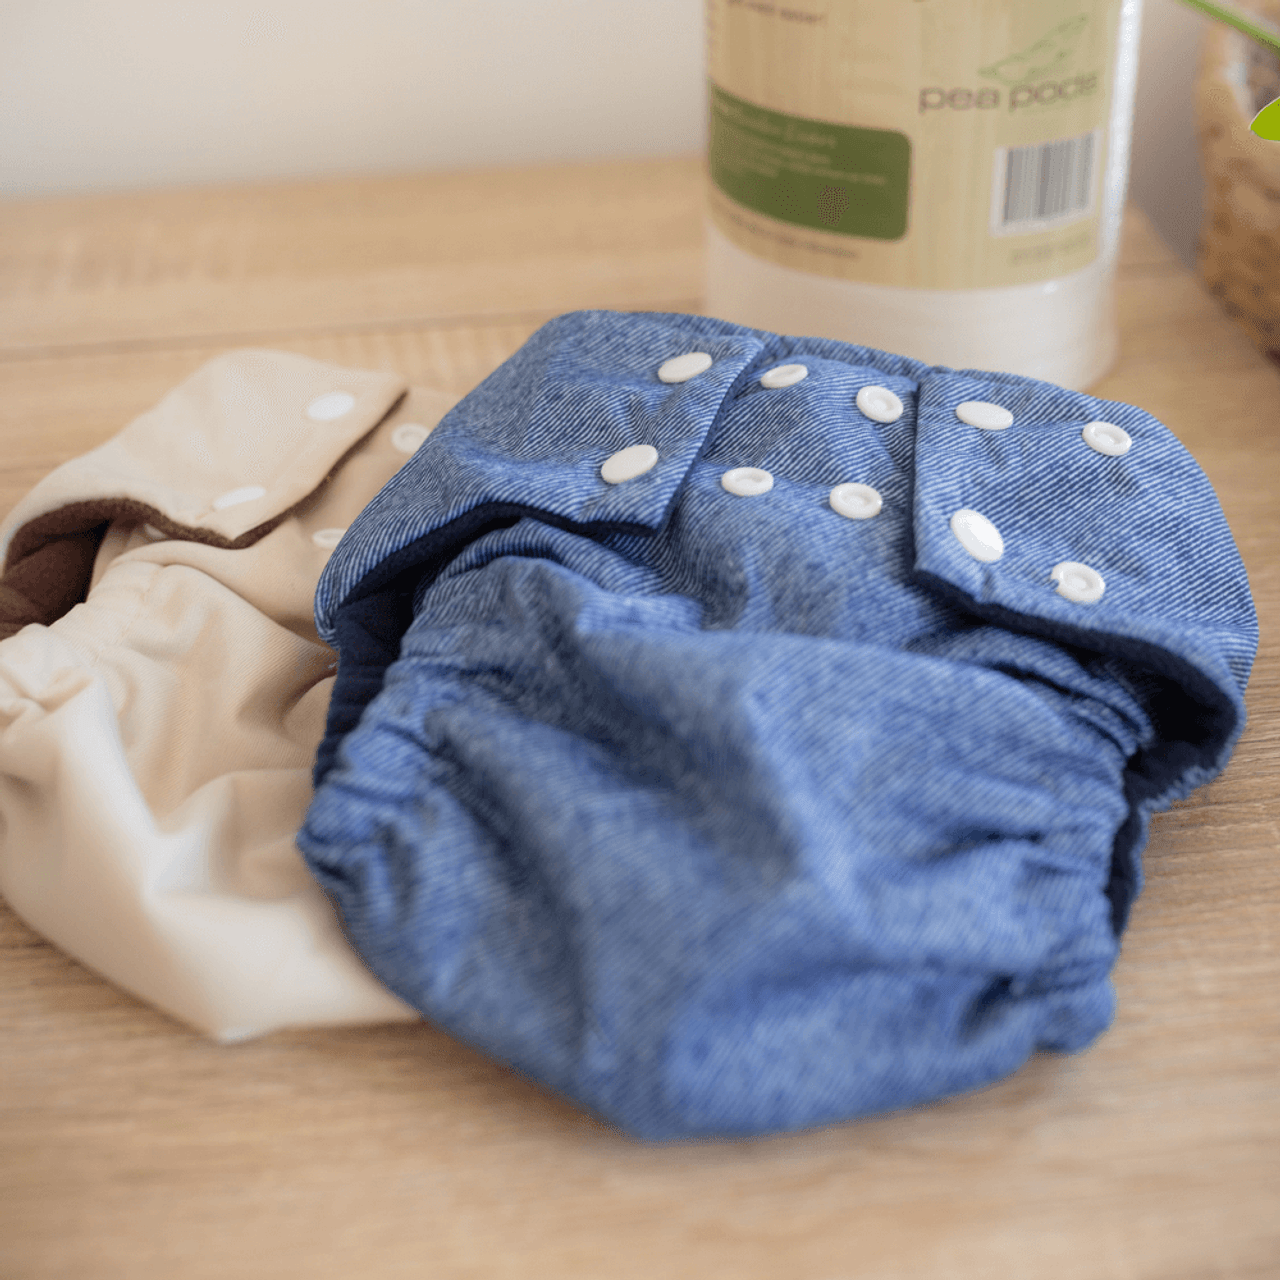 Pea Pods Reusable Nappies Denim